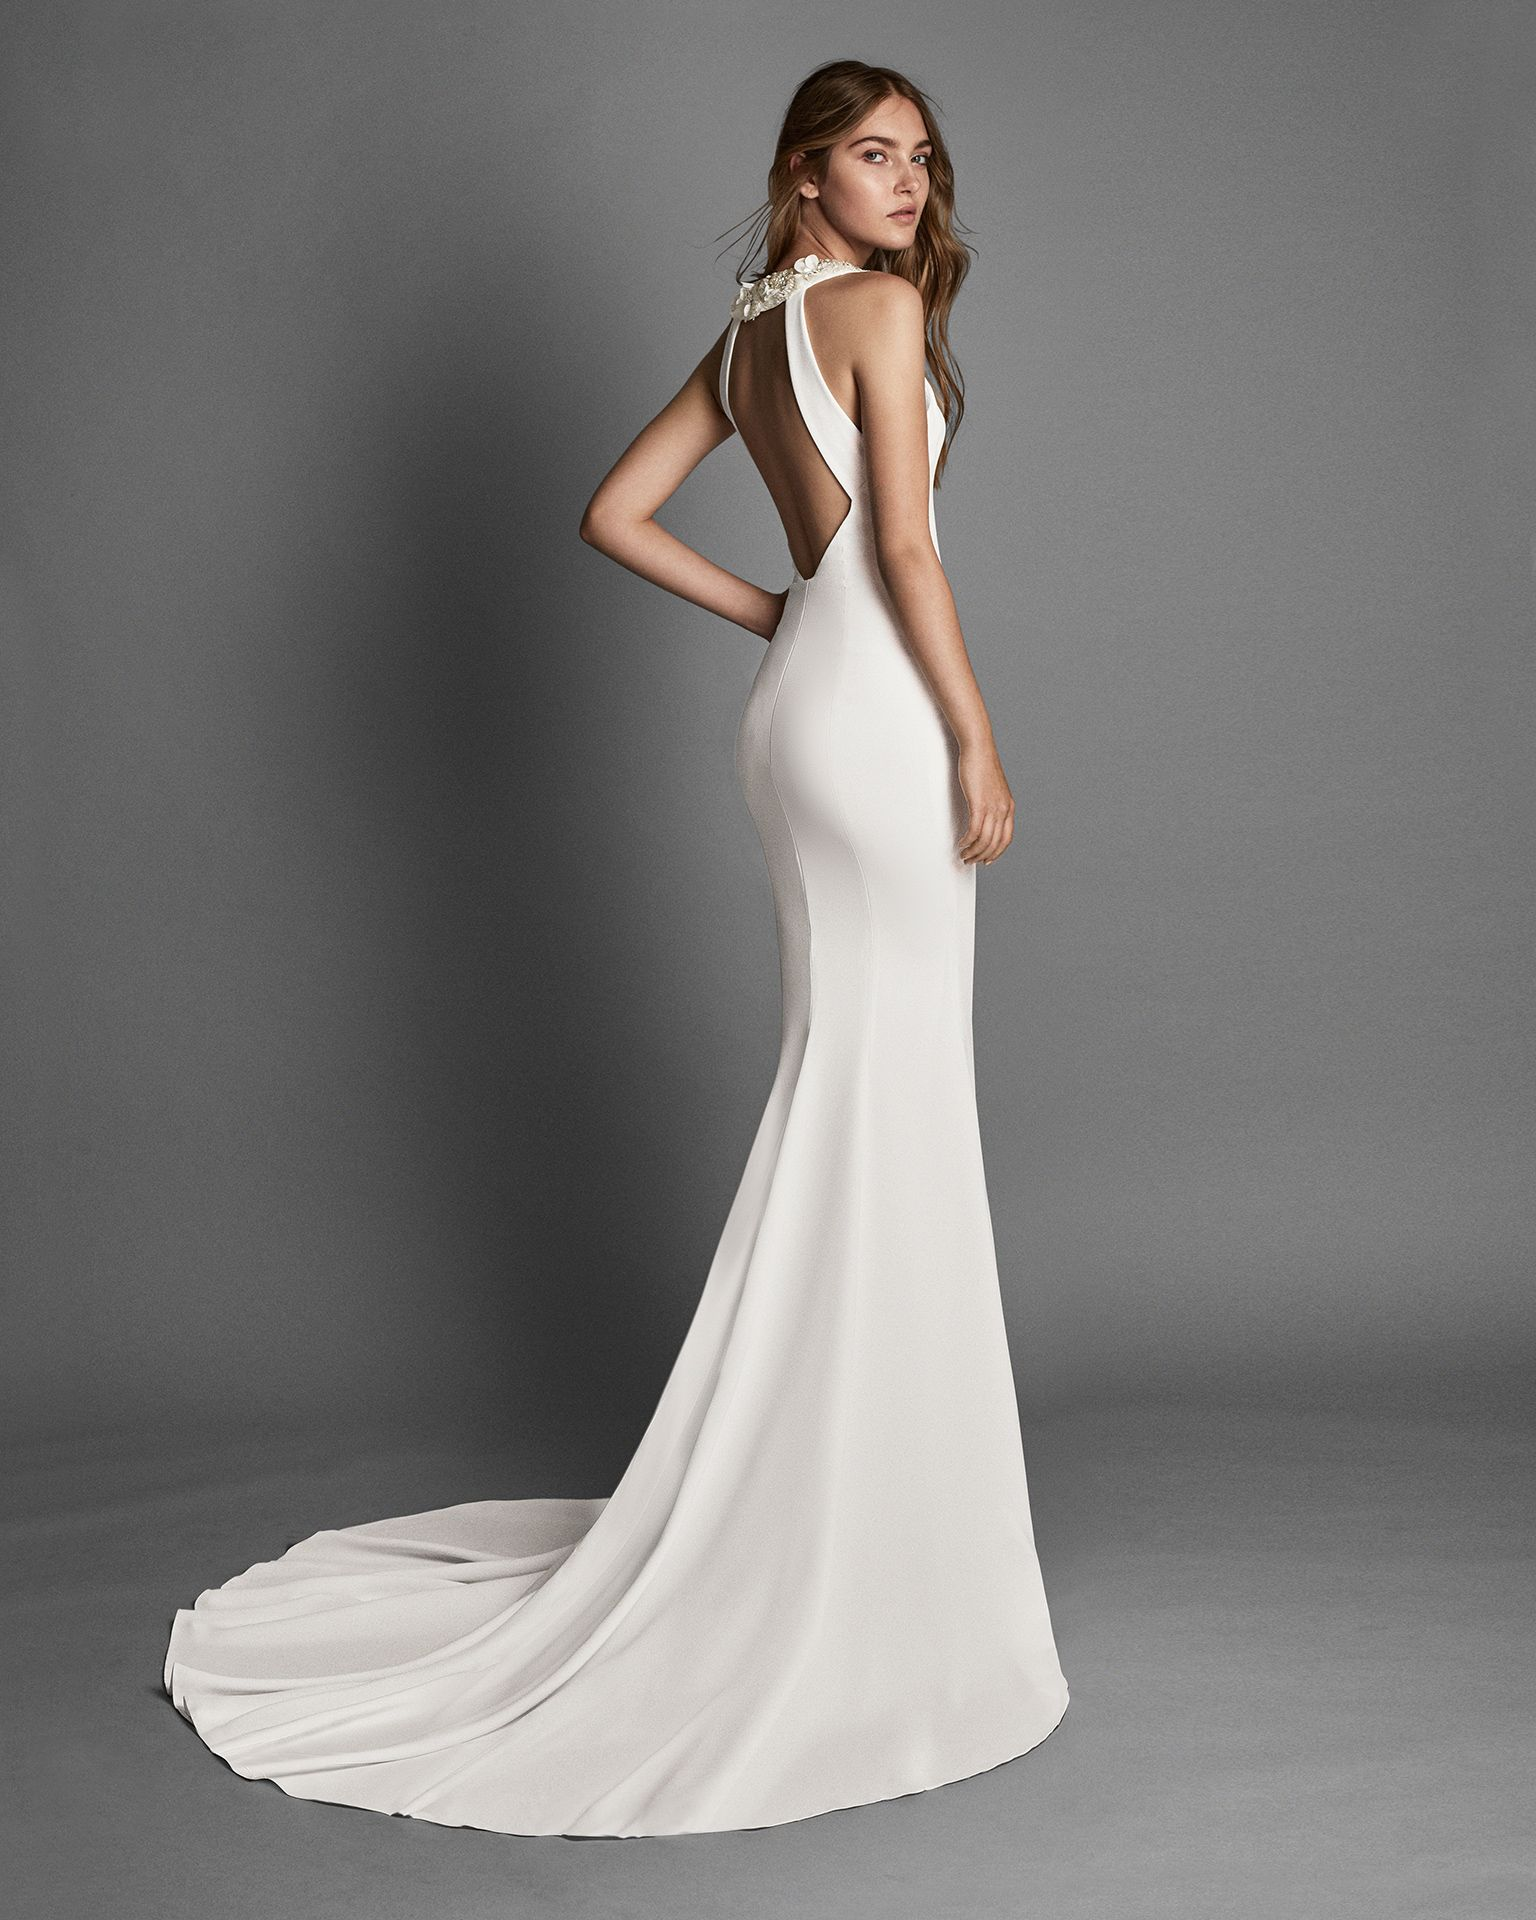 Rasgo by rosa clara available at buccius bridal in pewaukee wi